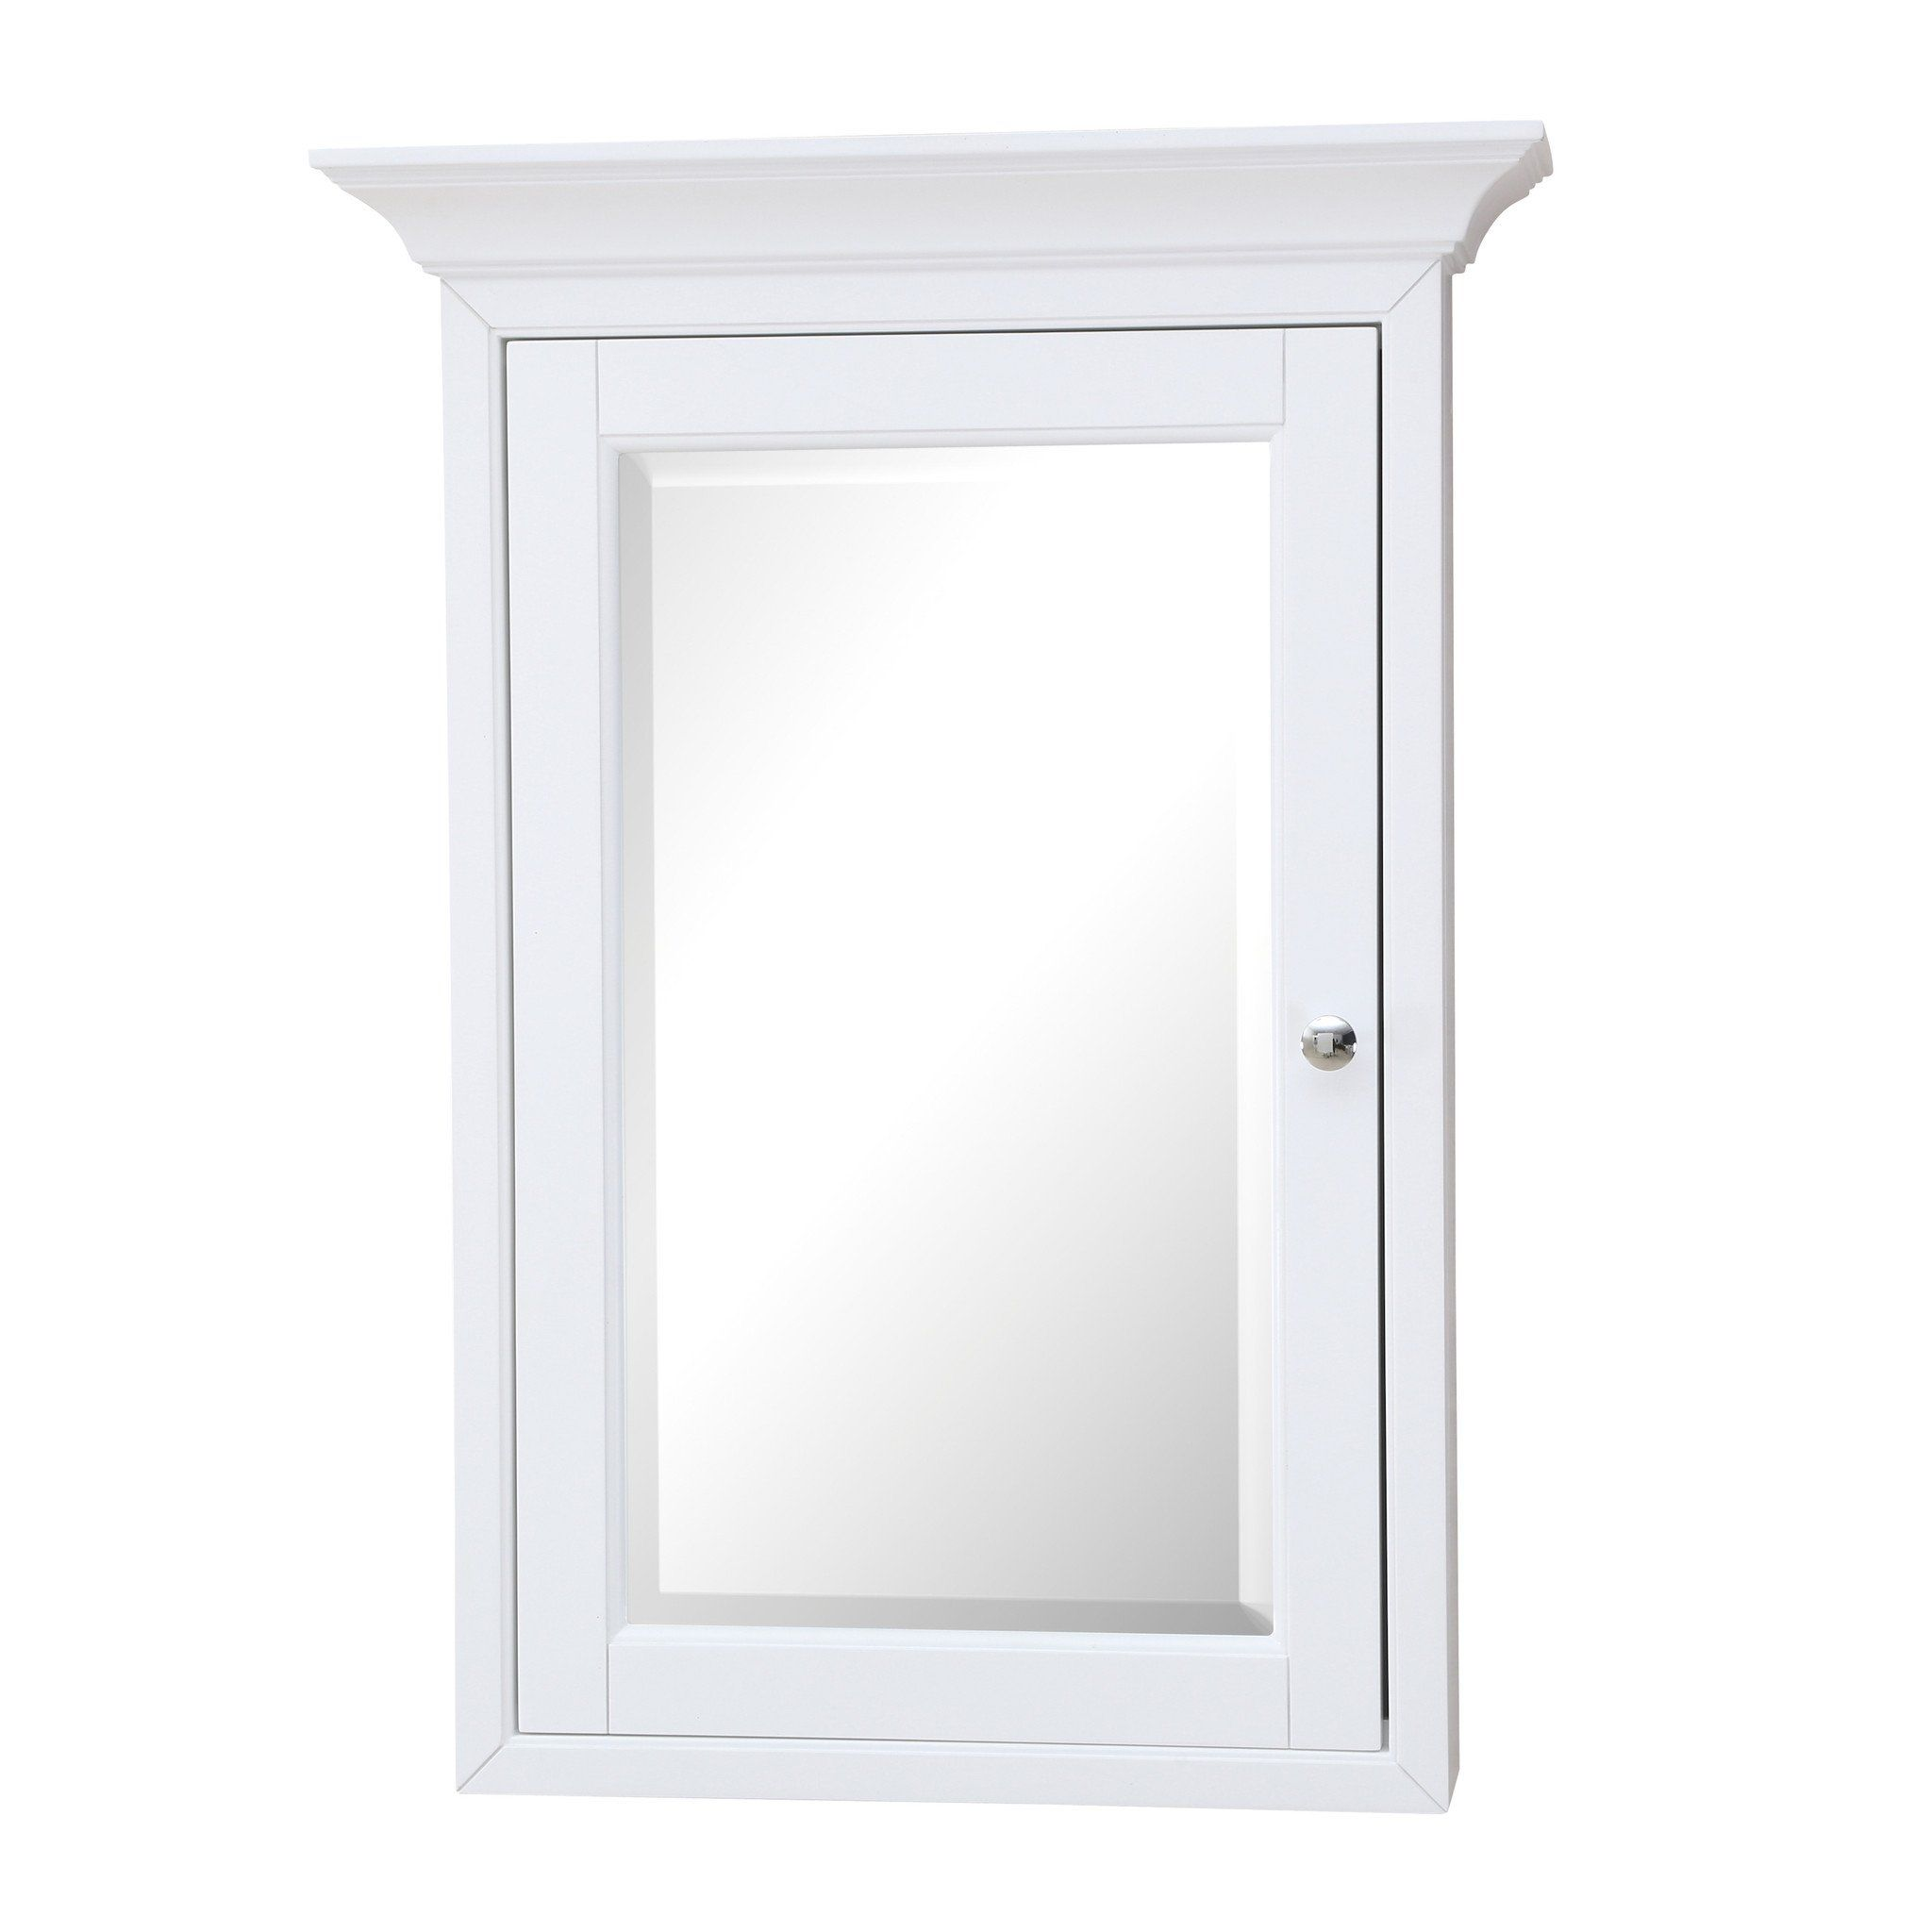 Newport Wall Mounted Medicine Cabinet White In 2021 Wall Mounted Medicine Cabinet Surface Mount Medicine Cabinet Kitchen Bath Collection